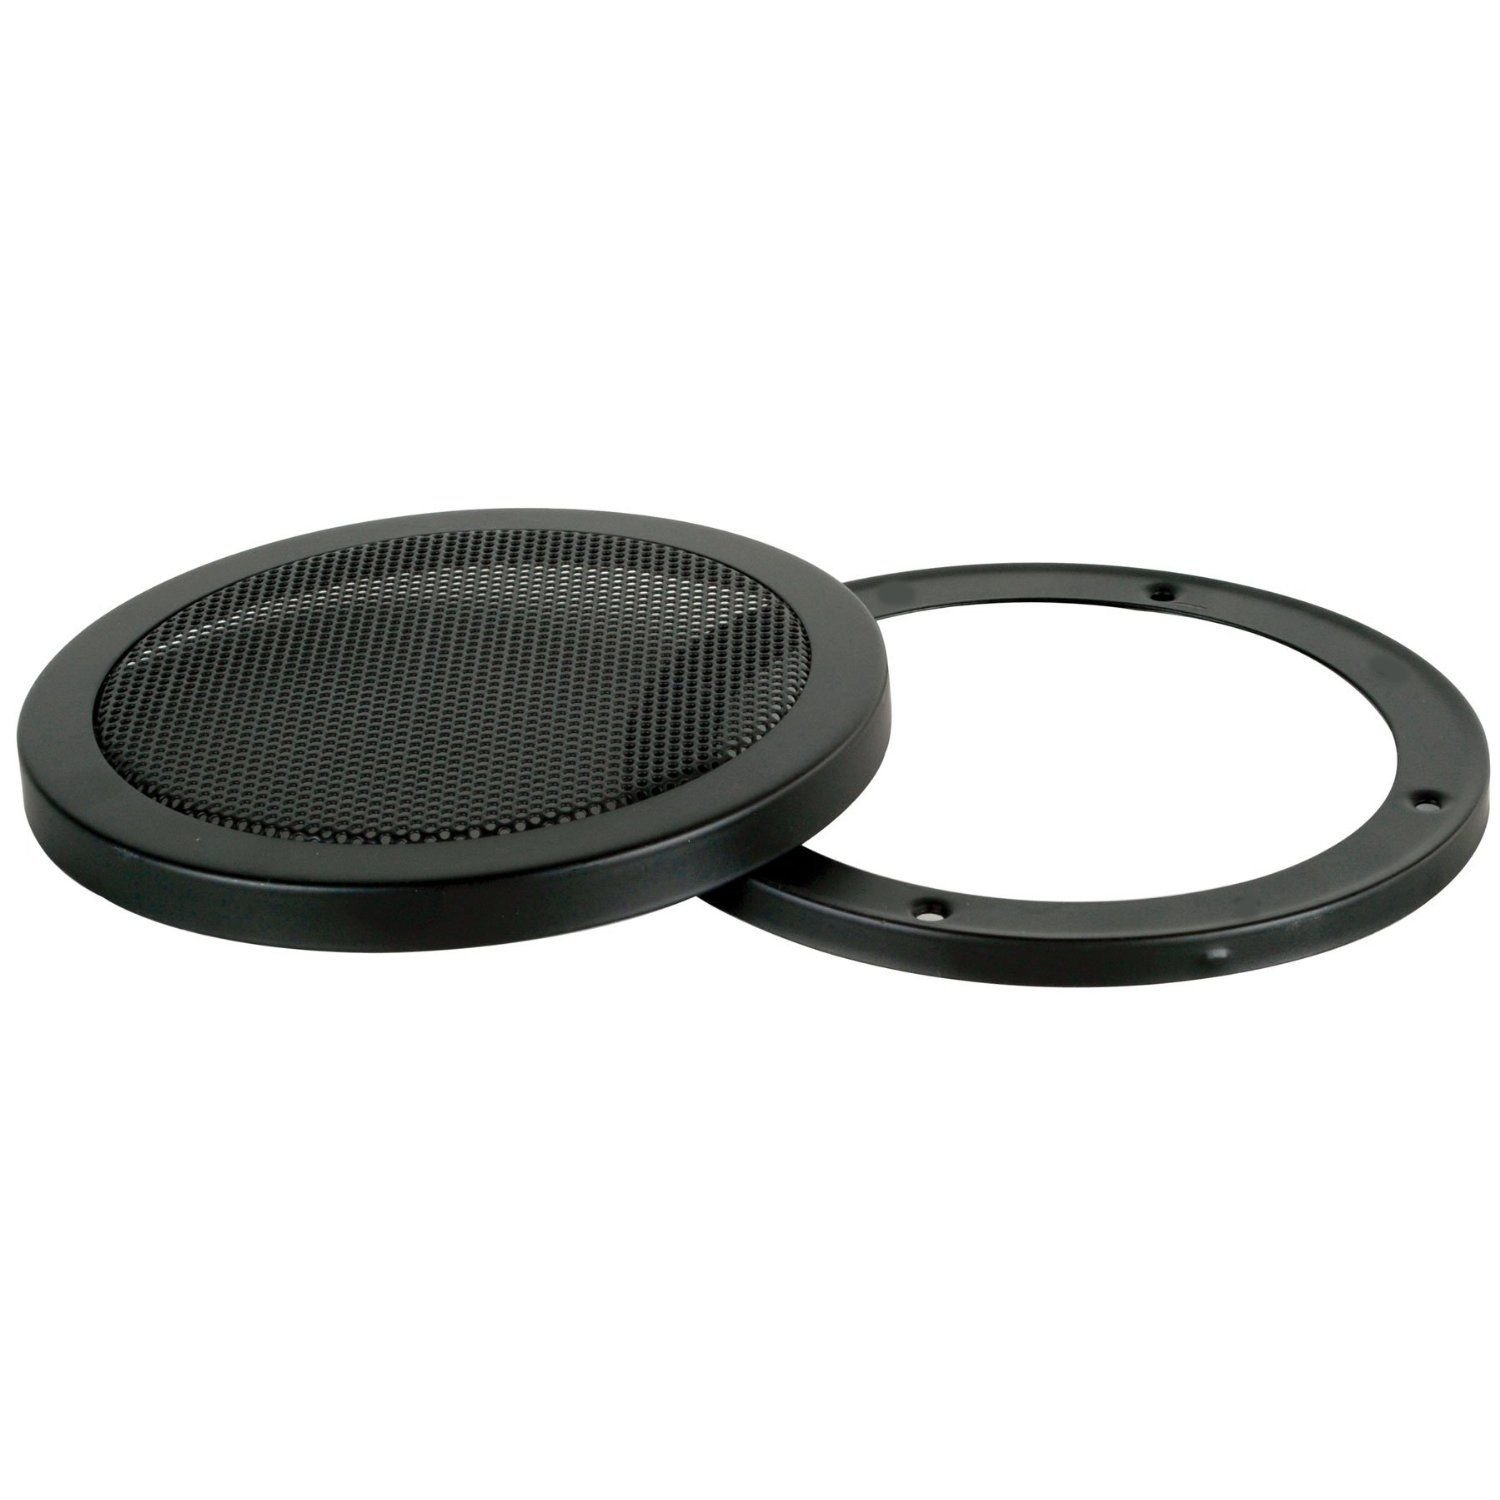 SINGLE 12-Inch 2-Piece Steel Mesh Speaker Subwoofer Grill - Black